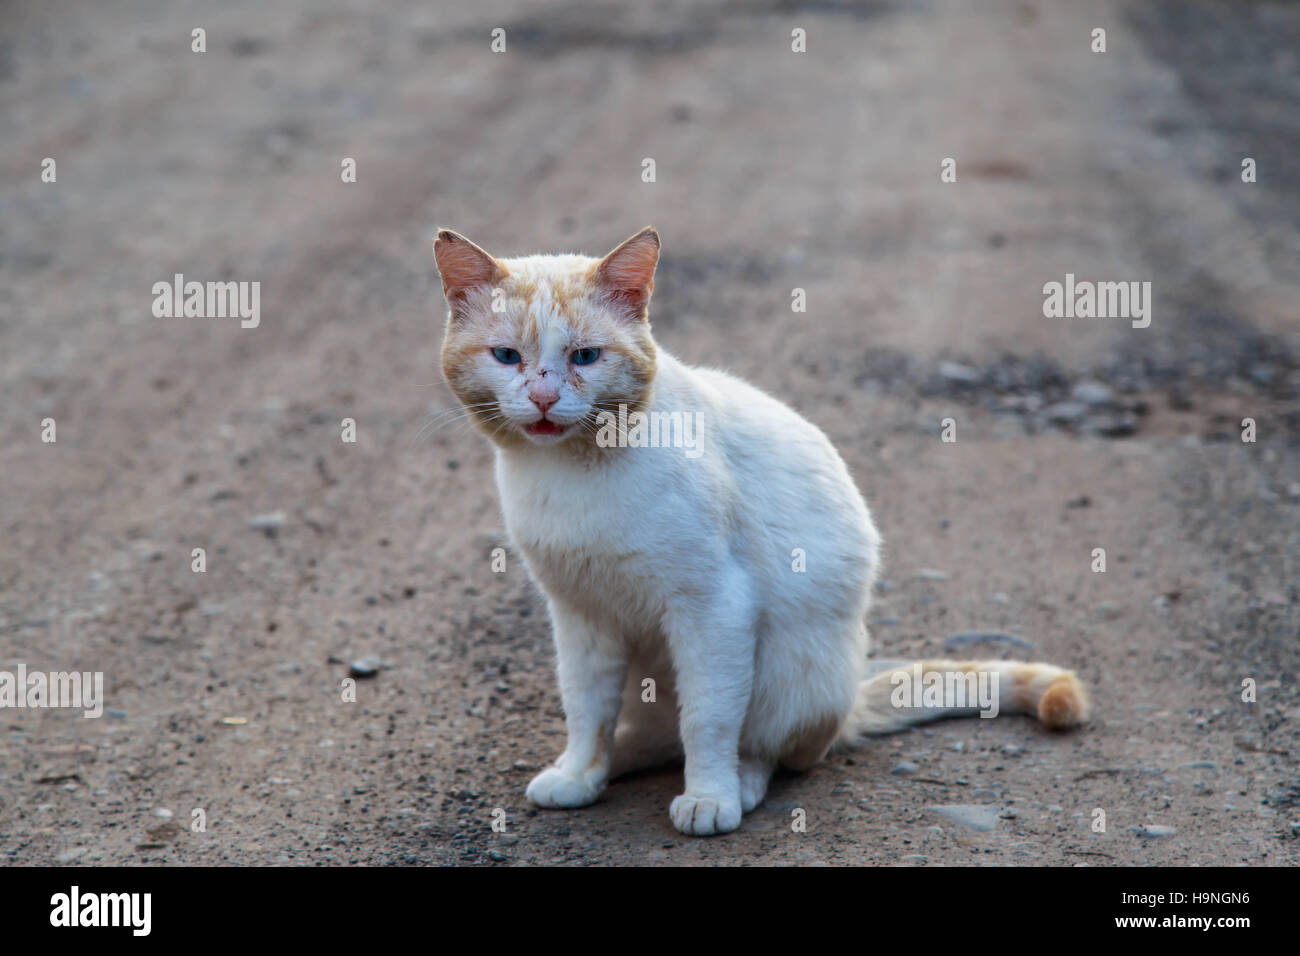 White cat on a village road - Stock Image